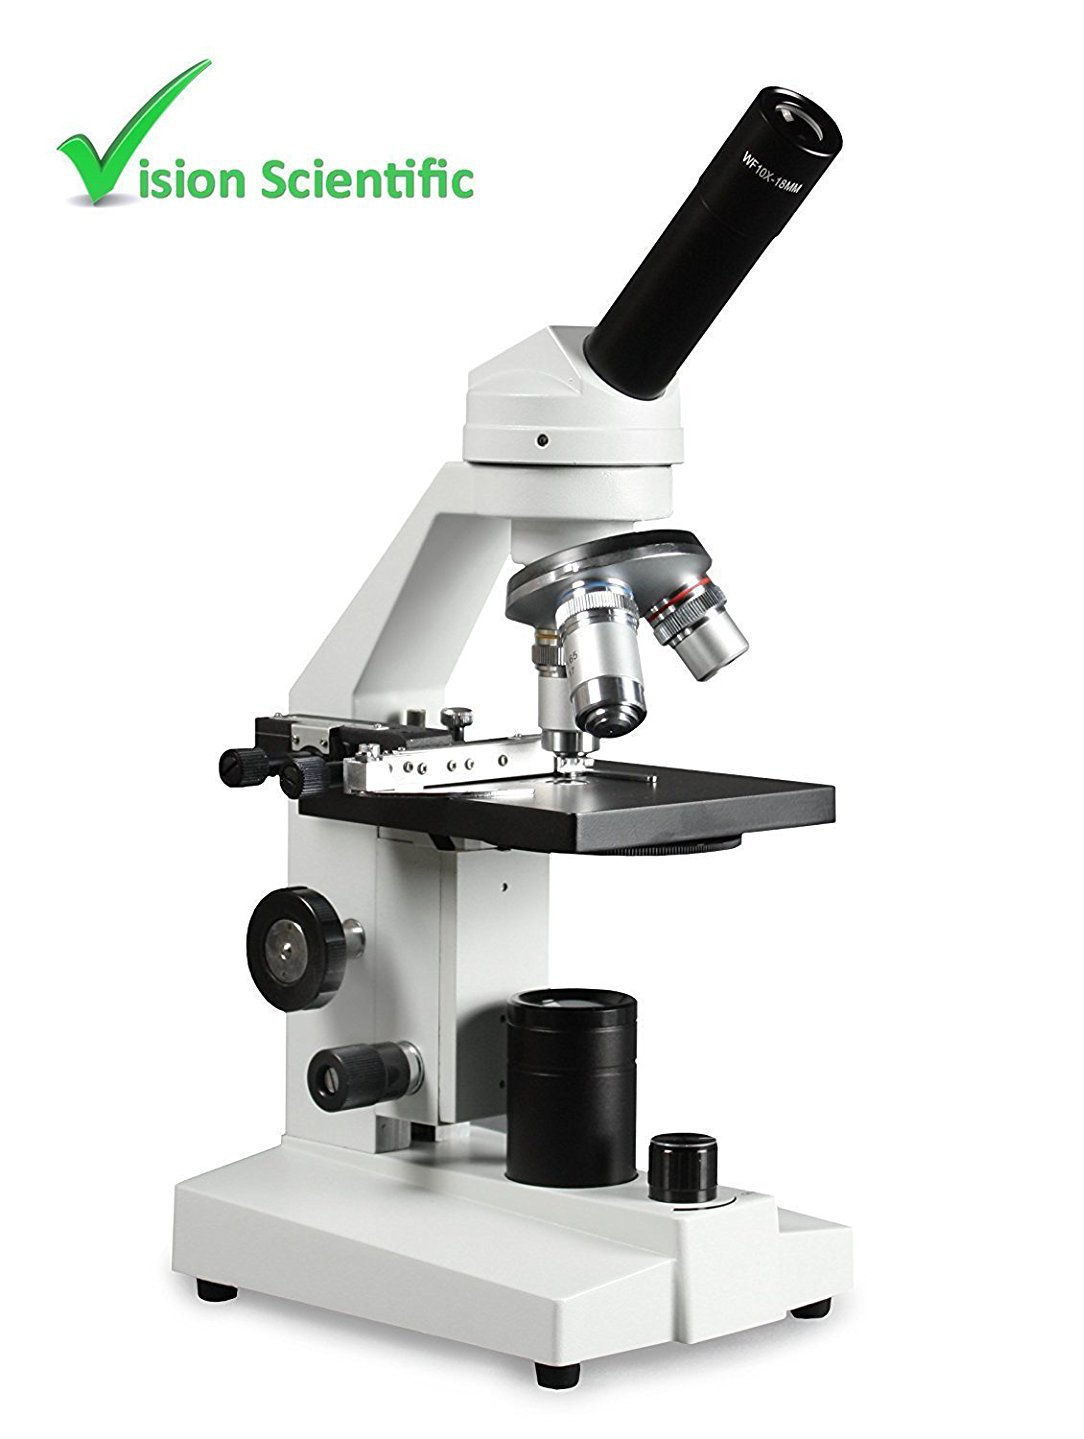 Vision Scientific VME0020-E3-MS2 Student LED Microscope, 10x WF and 25x WF Eyepiece, 40x-1000x Magnification, LED Illumination with light intensity control, Mechanical Stage, Coarse and Fine Focus